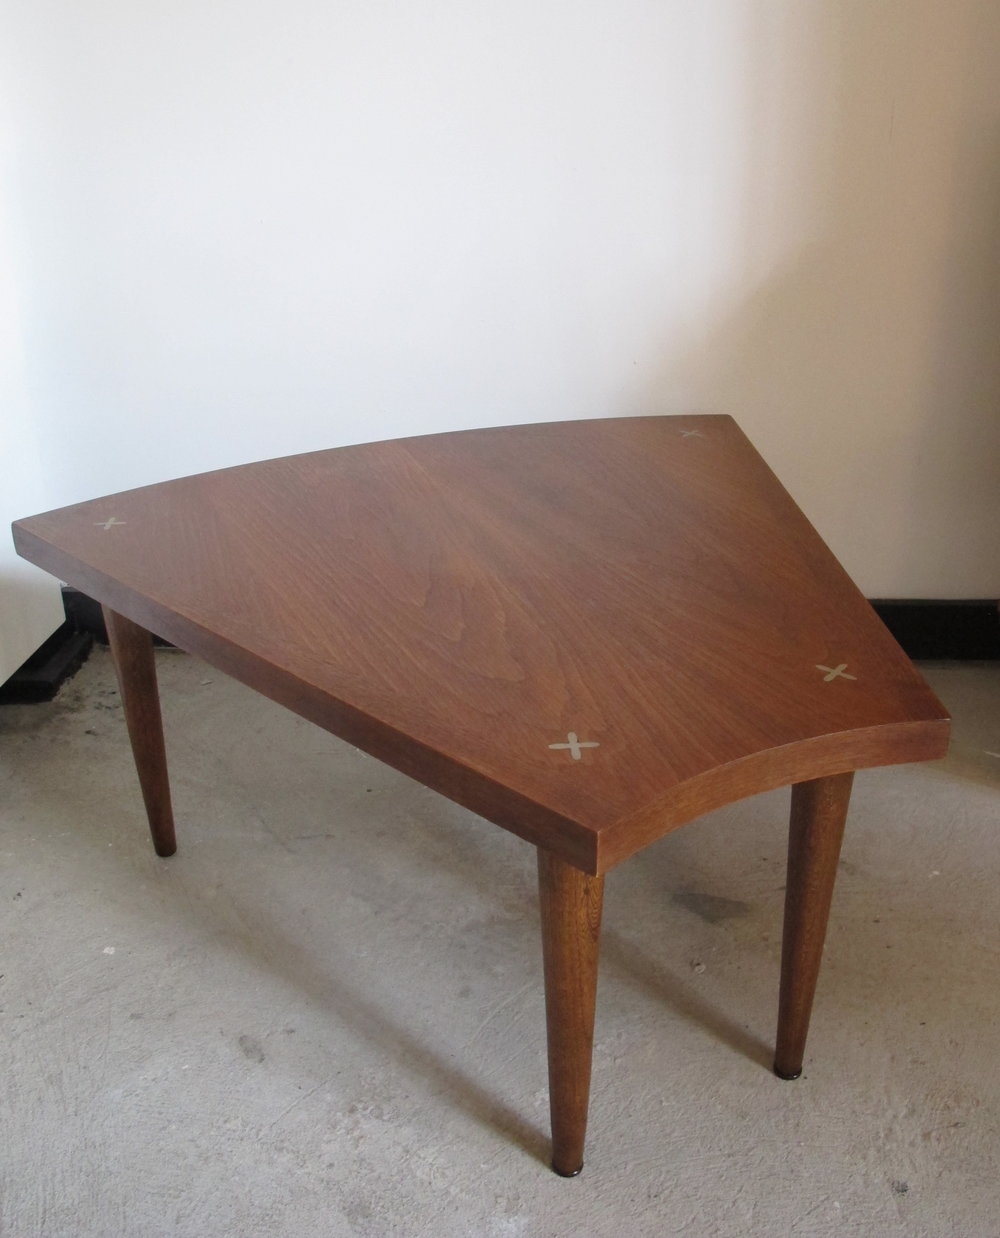 MID CENTURY SIDE TABLE BY MARTIN GERSHON FOR AMERICAN OF MARTINSVILLE